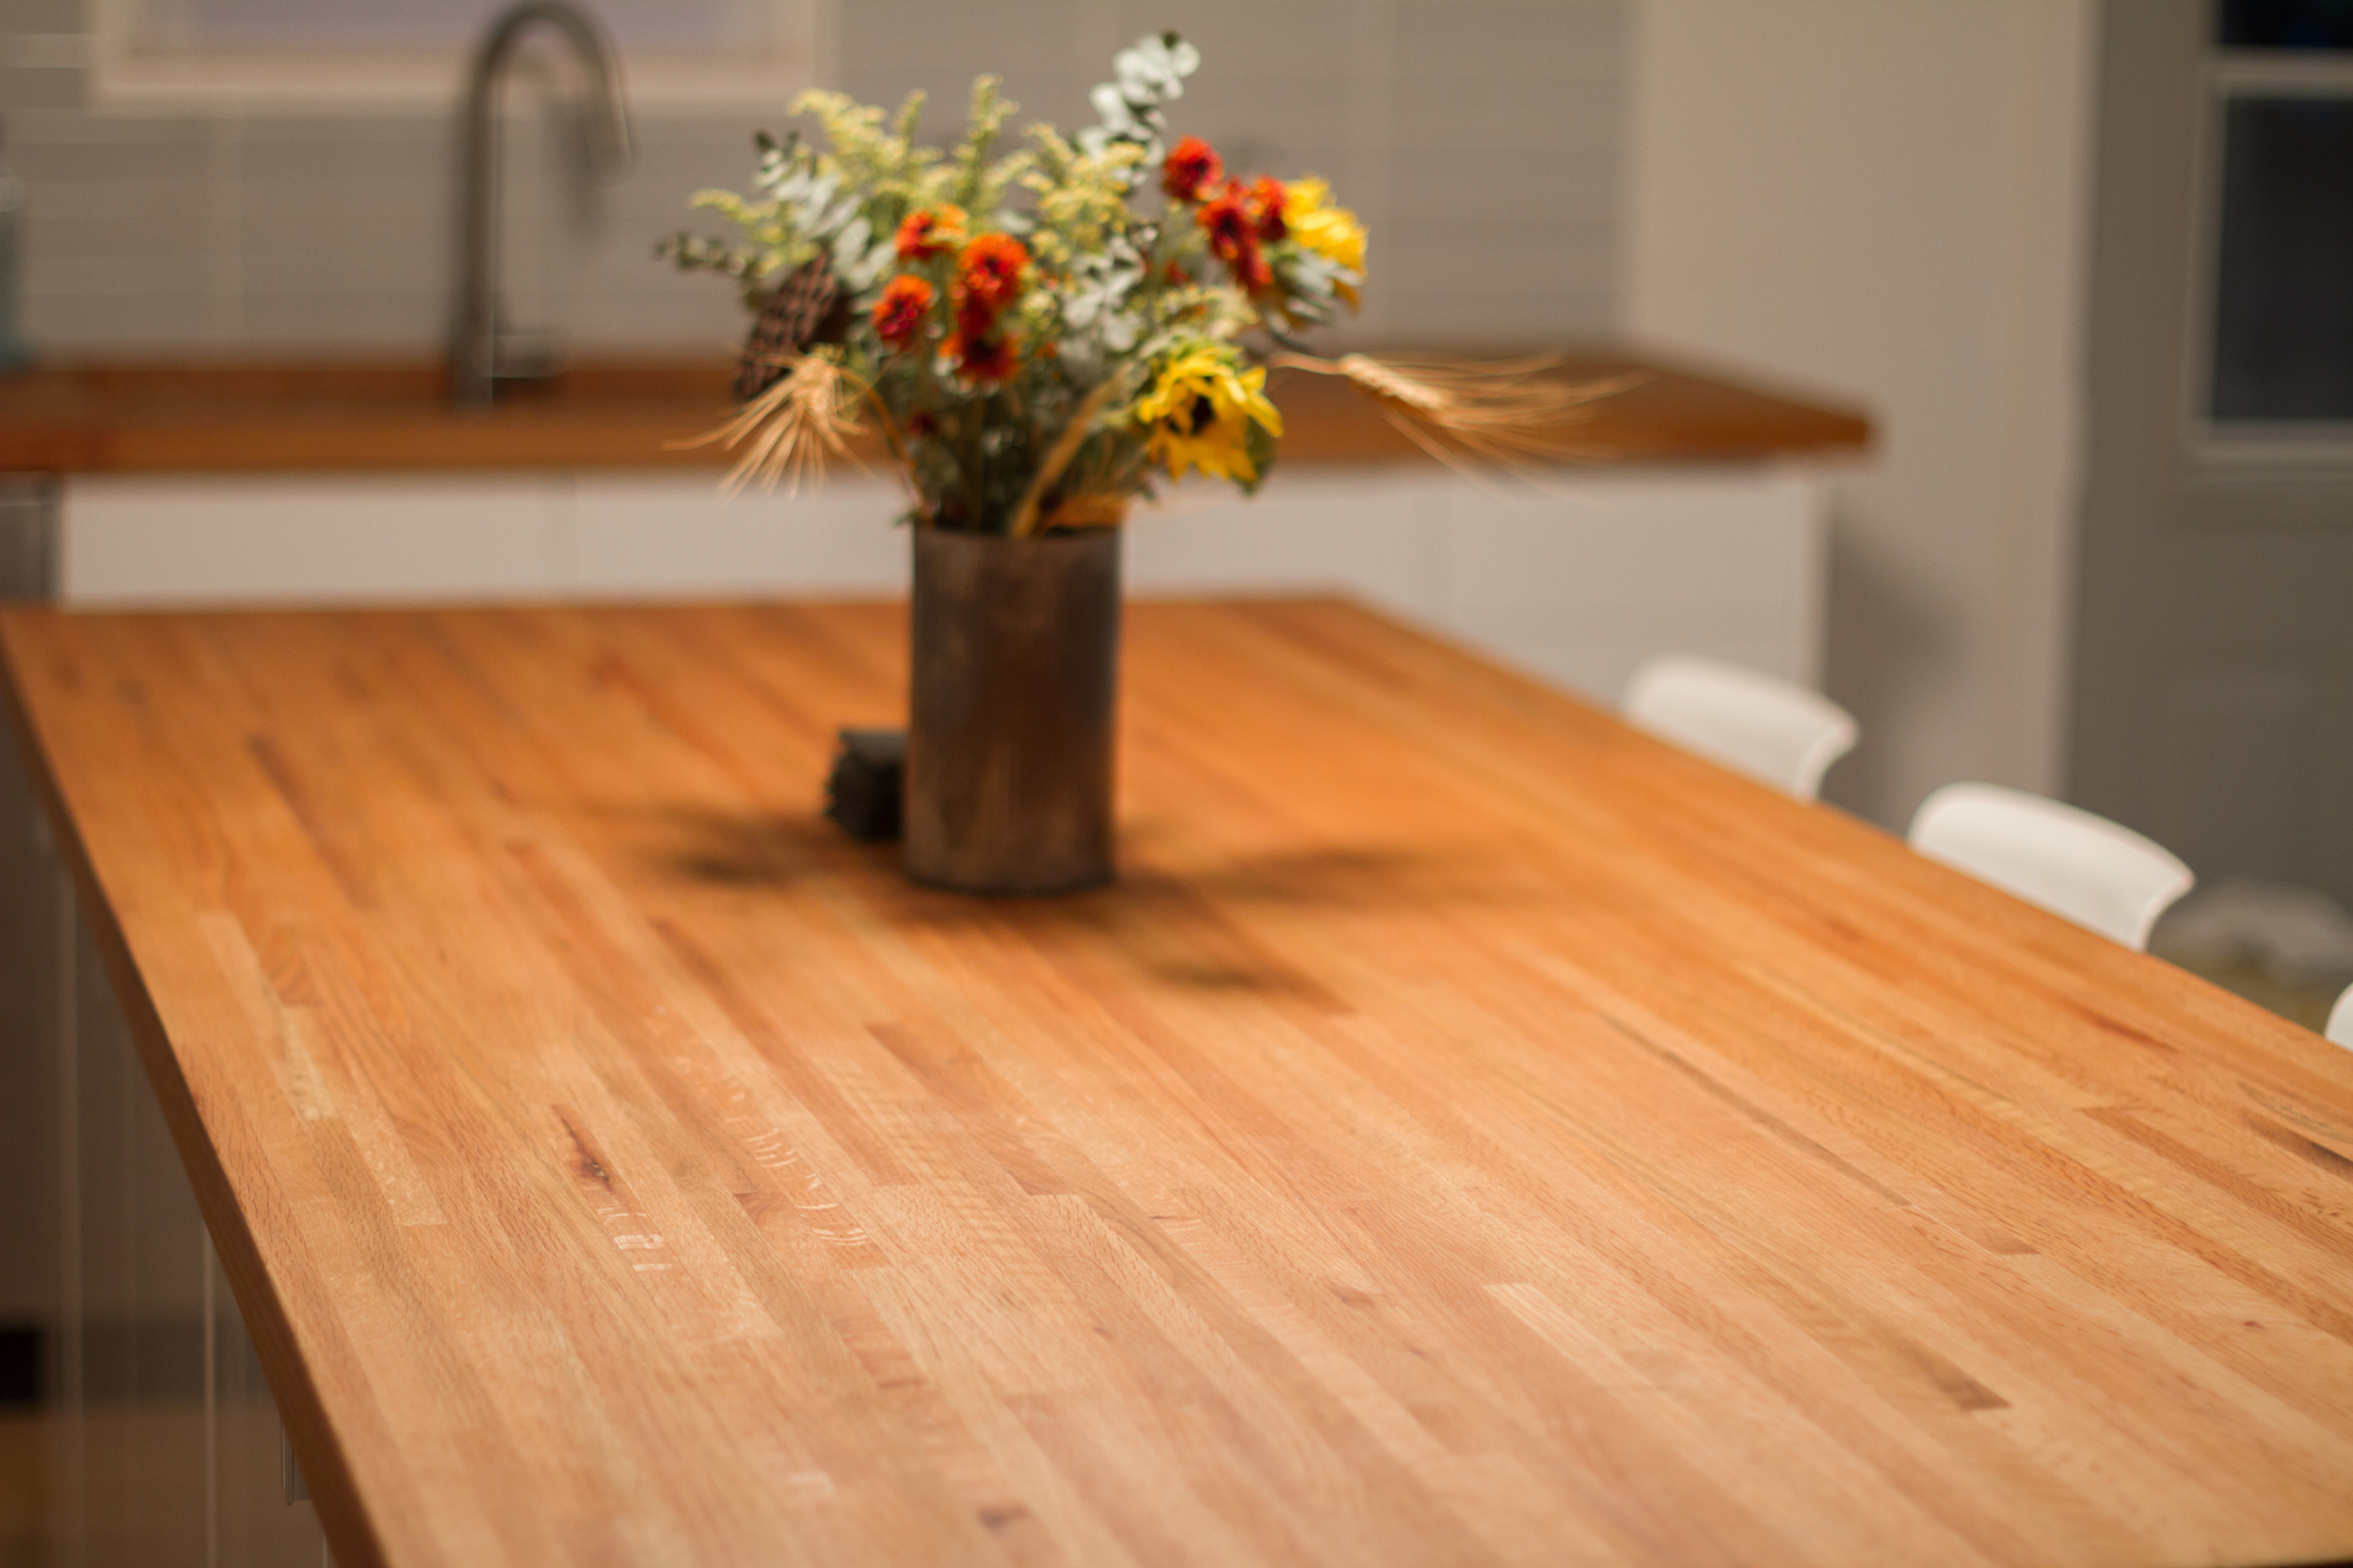 Diy Butcher Block Countertops Made From